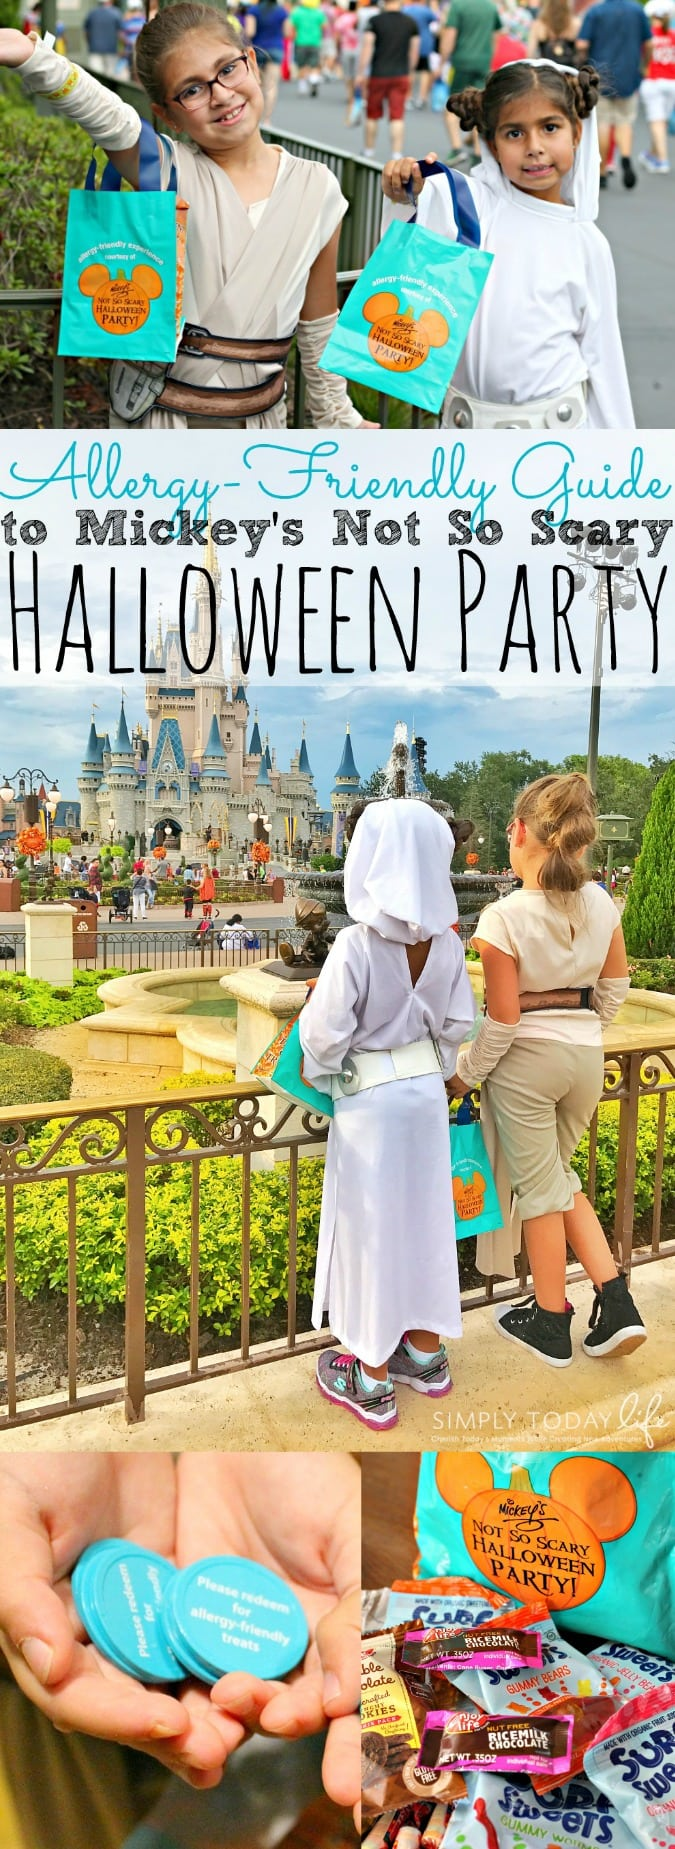 Allergy Friendly Guide To Mickey's Not So Scary Halloween Party - simplytodayllife.com